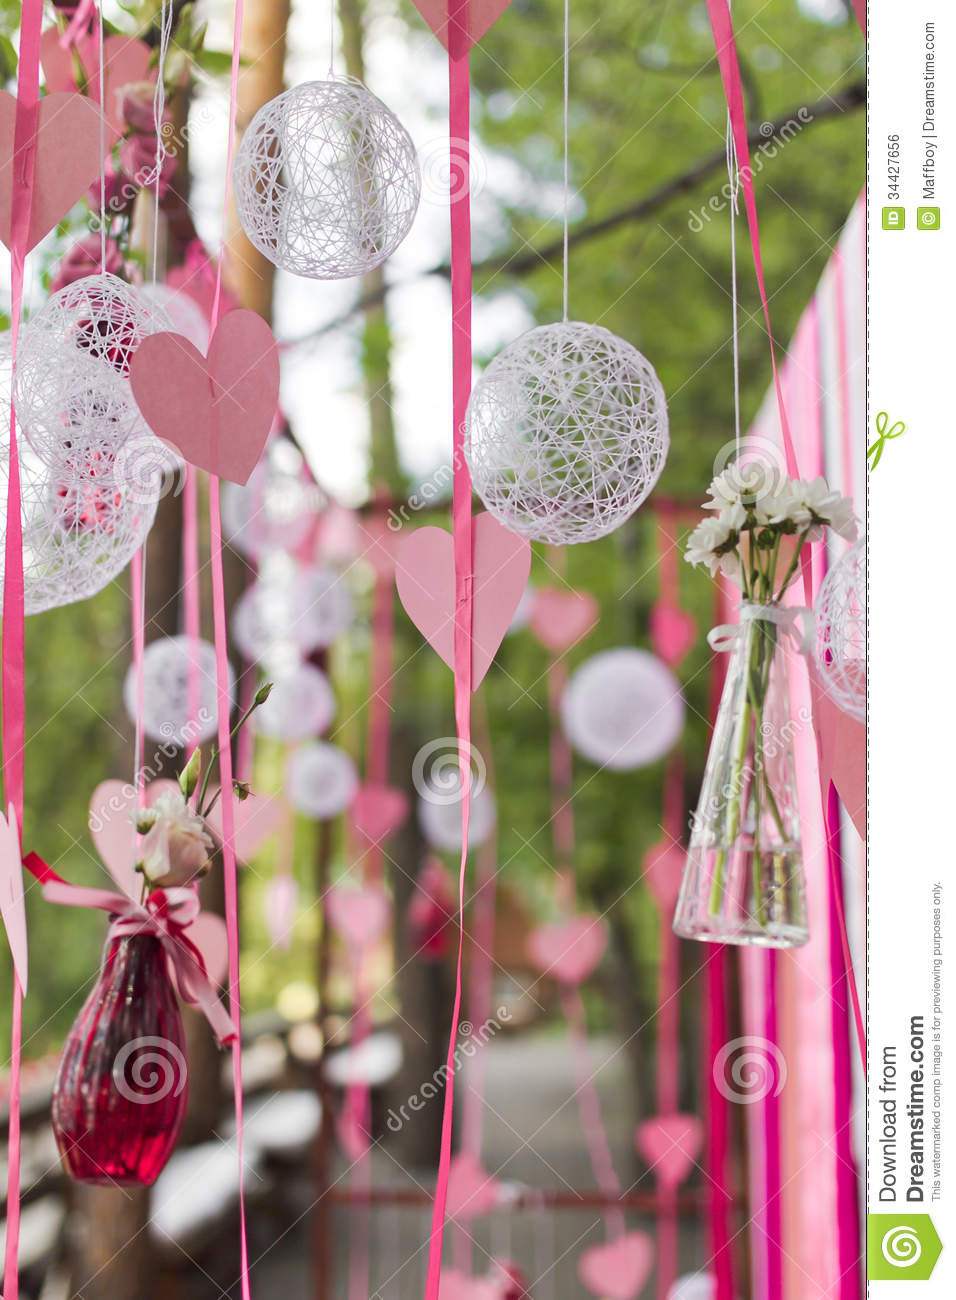 Wedding Arch Decorations Wedding Arch Royalty Free Stock Image Image 34427656